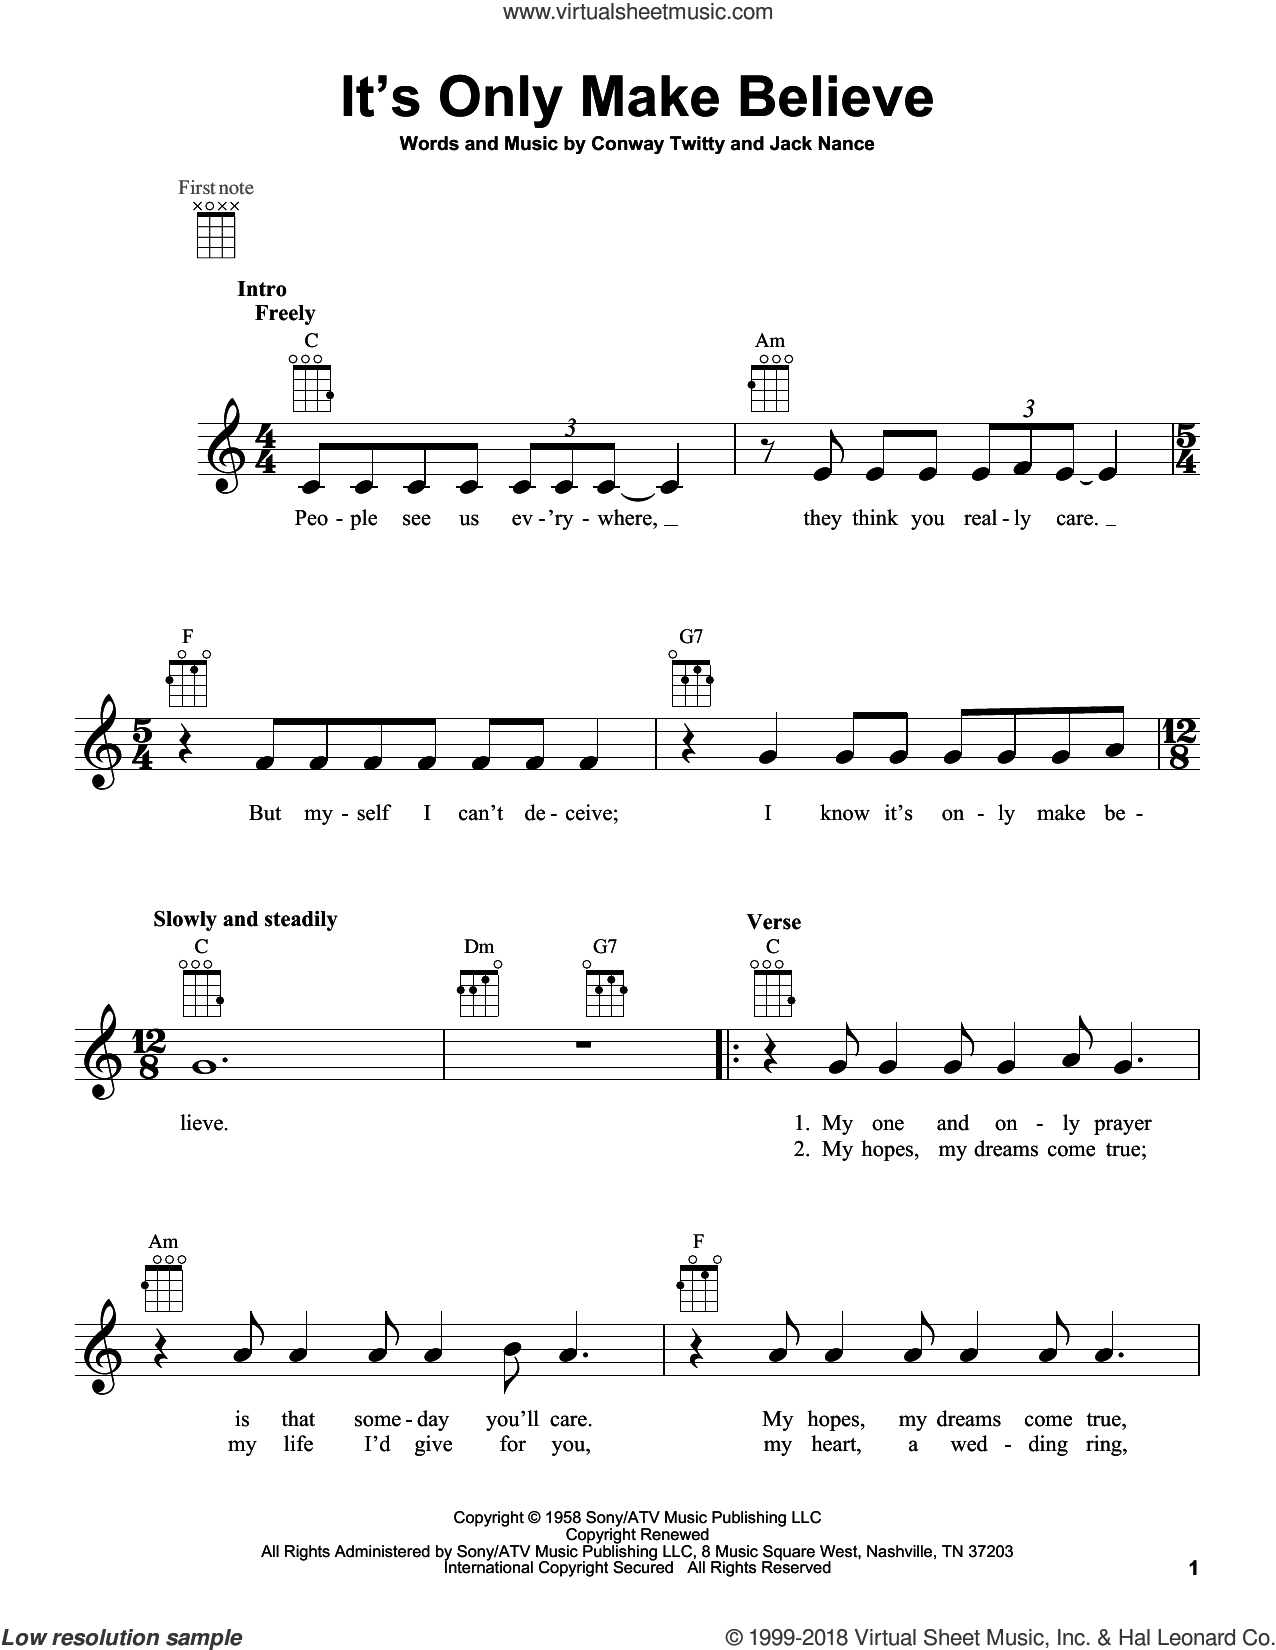 It's Only Make Believe sheet music for ukulele by Conway Twitty, Glen Campbell and Jack Nance, intermediate skill level